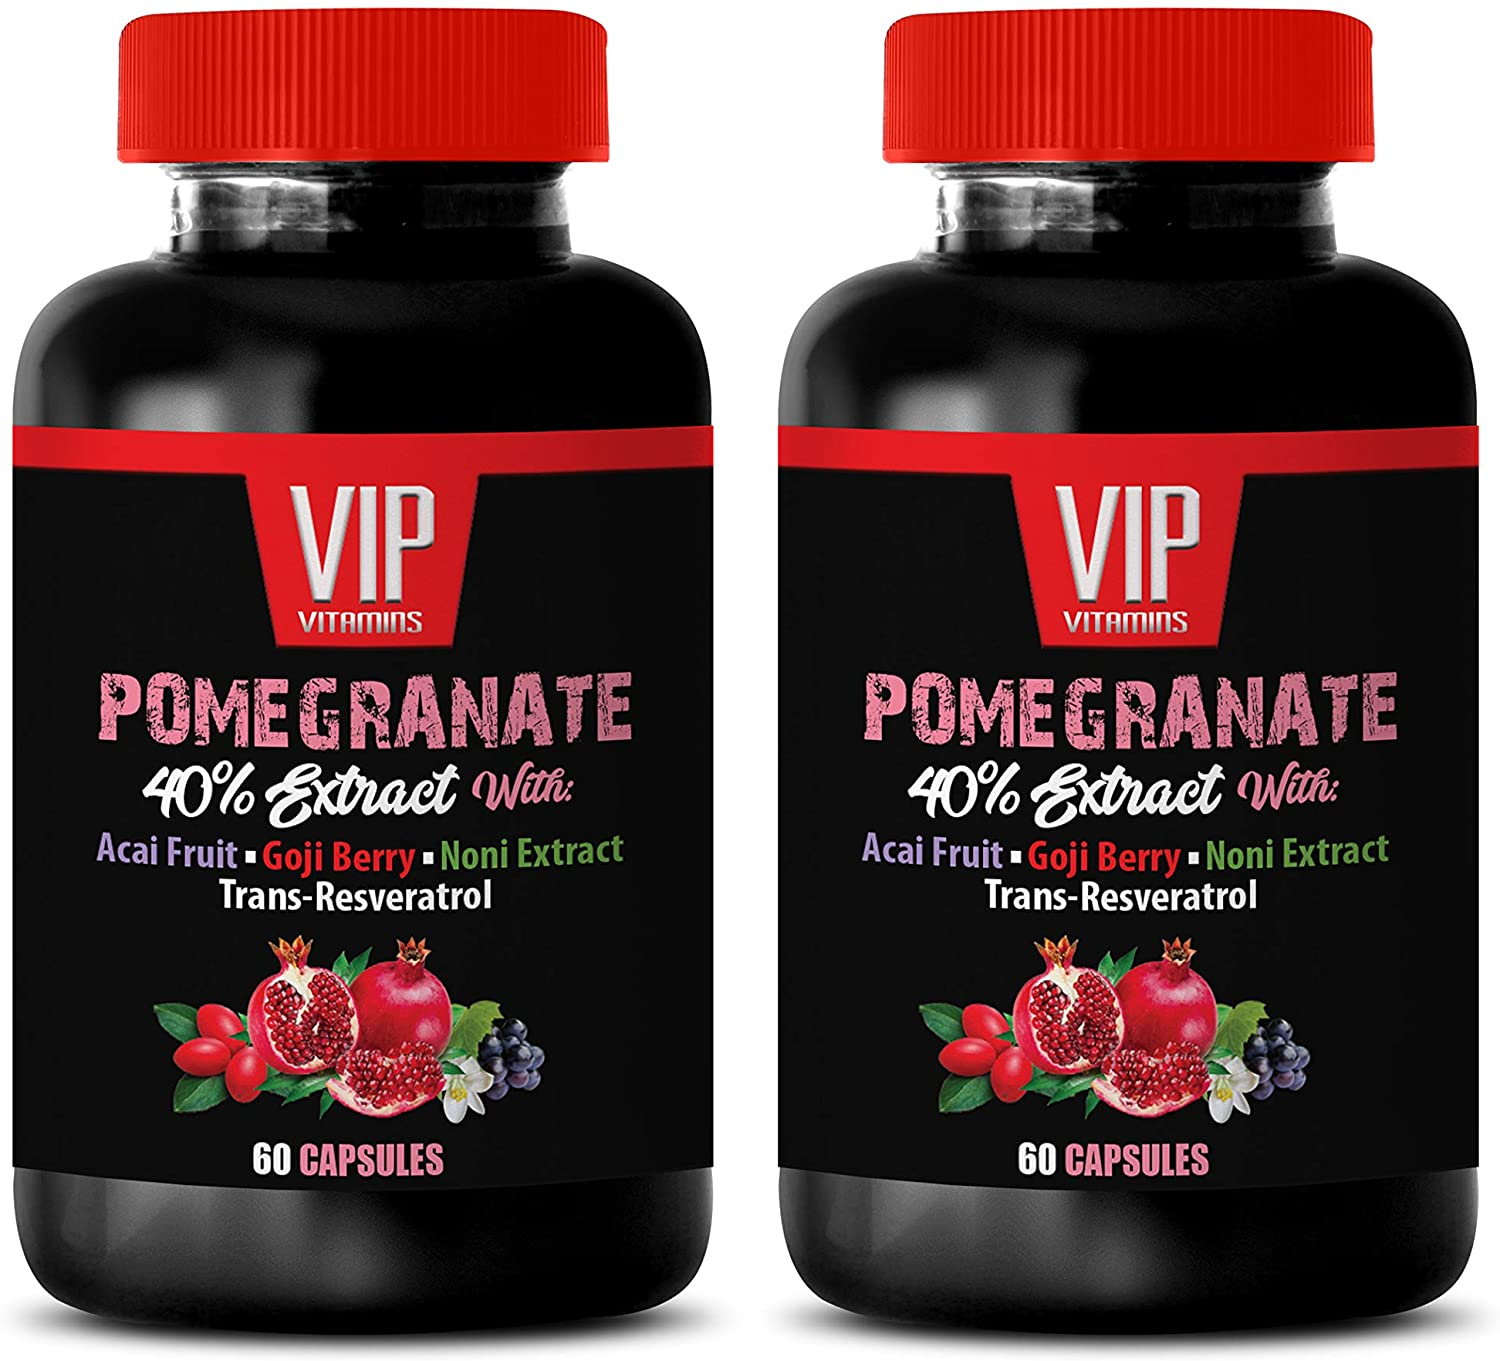 Weight Loss Fat Burner Supplements - Pomegranate Extract Formula - with ACAI, NONI, RESVERATROL and Goji Berry - Elderberry Extract Pills - 2 Bottles 120 Capsules